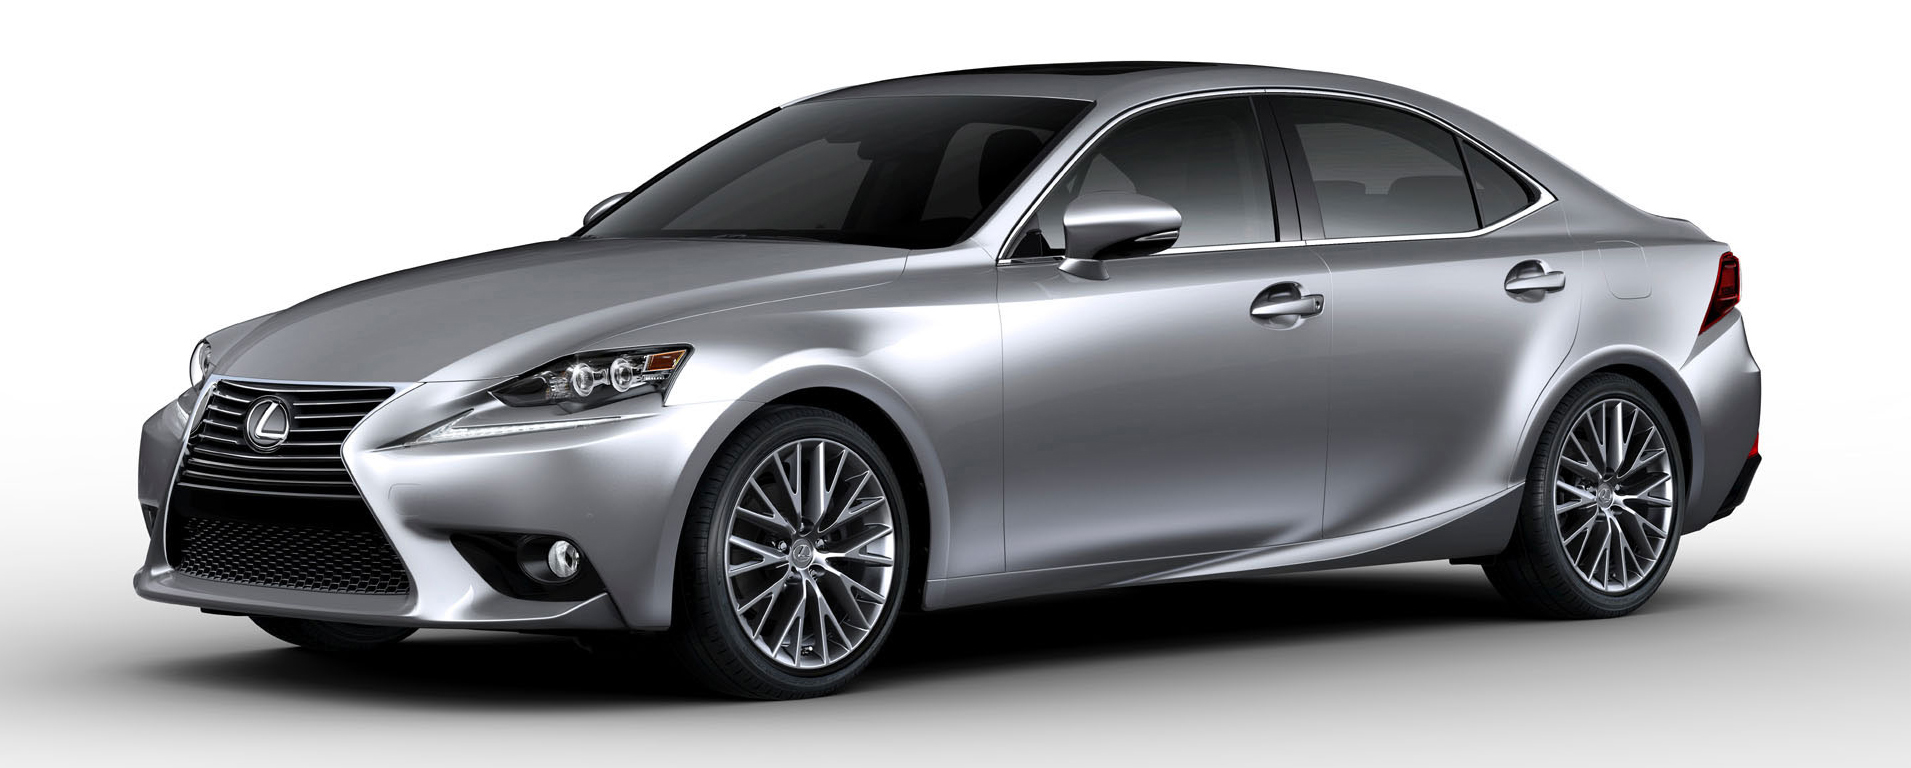 Lexus Is 350 >> New 2014 Lexus IS officially revealed – IS 250, IS 350, F Sport, IS 300h, the first ever hybrid ...